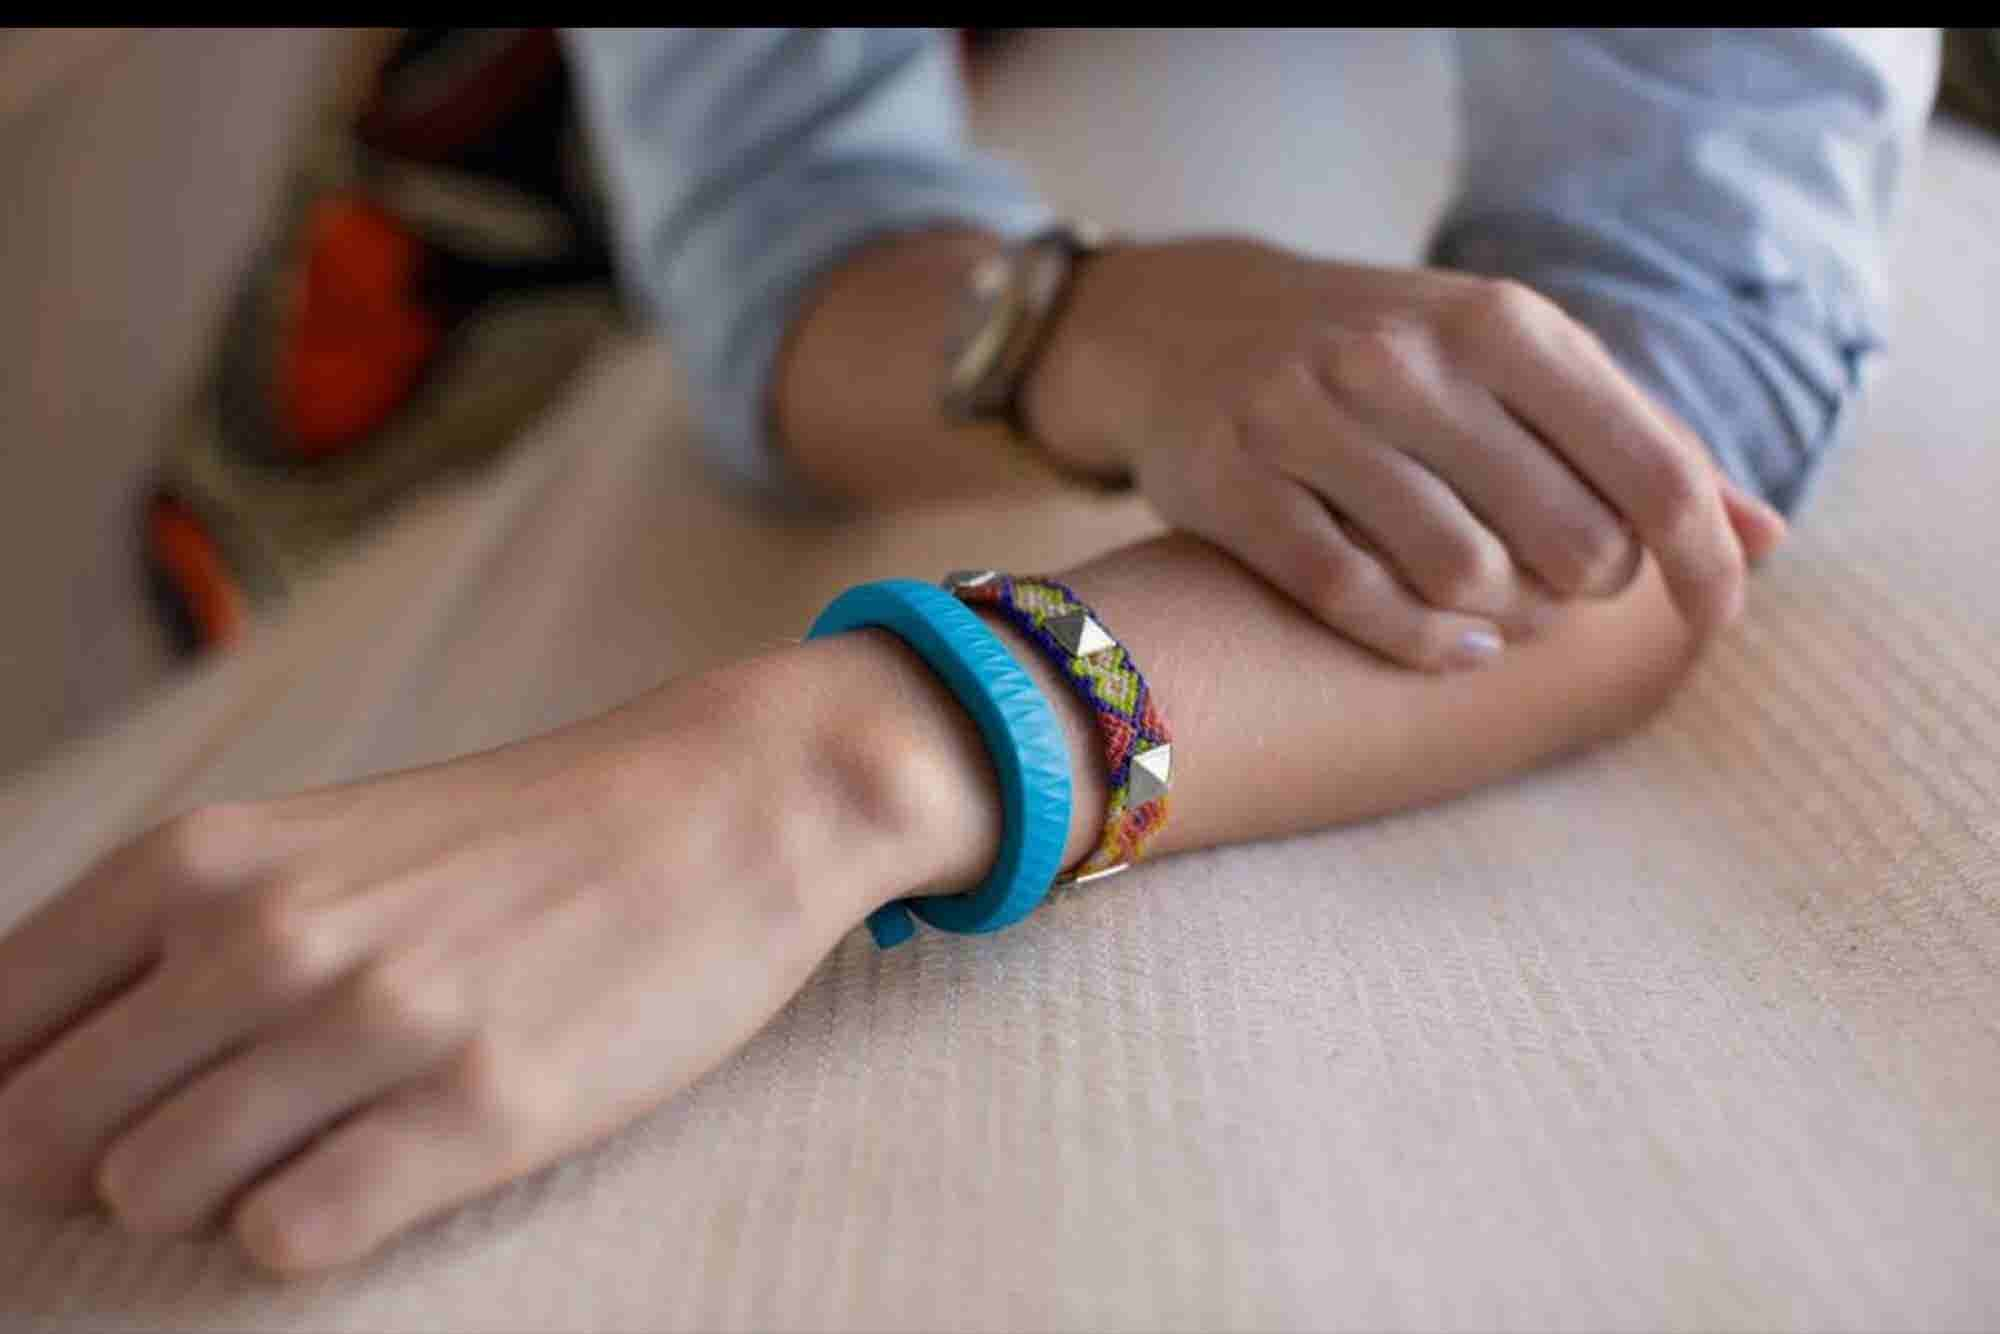 Google Reportedly Eyeing 'Strategic Investment' in Struggling Wearable...